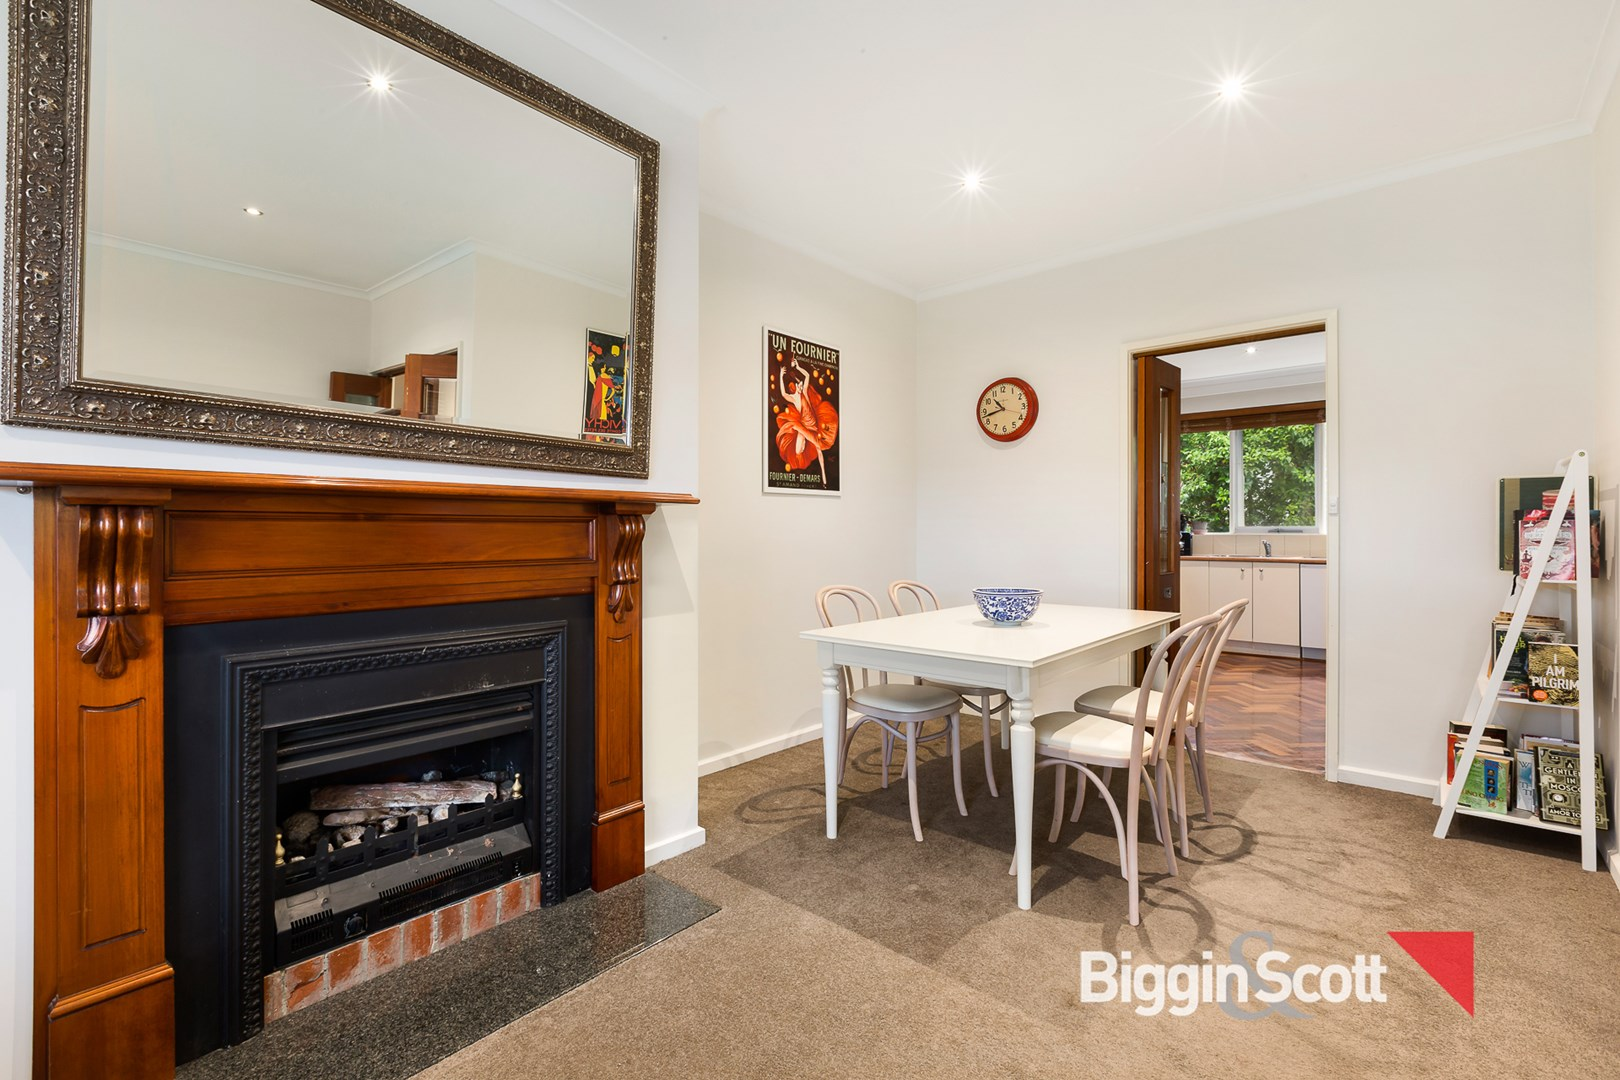 4/1433 High Street, Glen Iris VIC 3146, Image 0